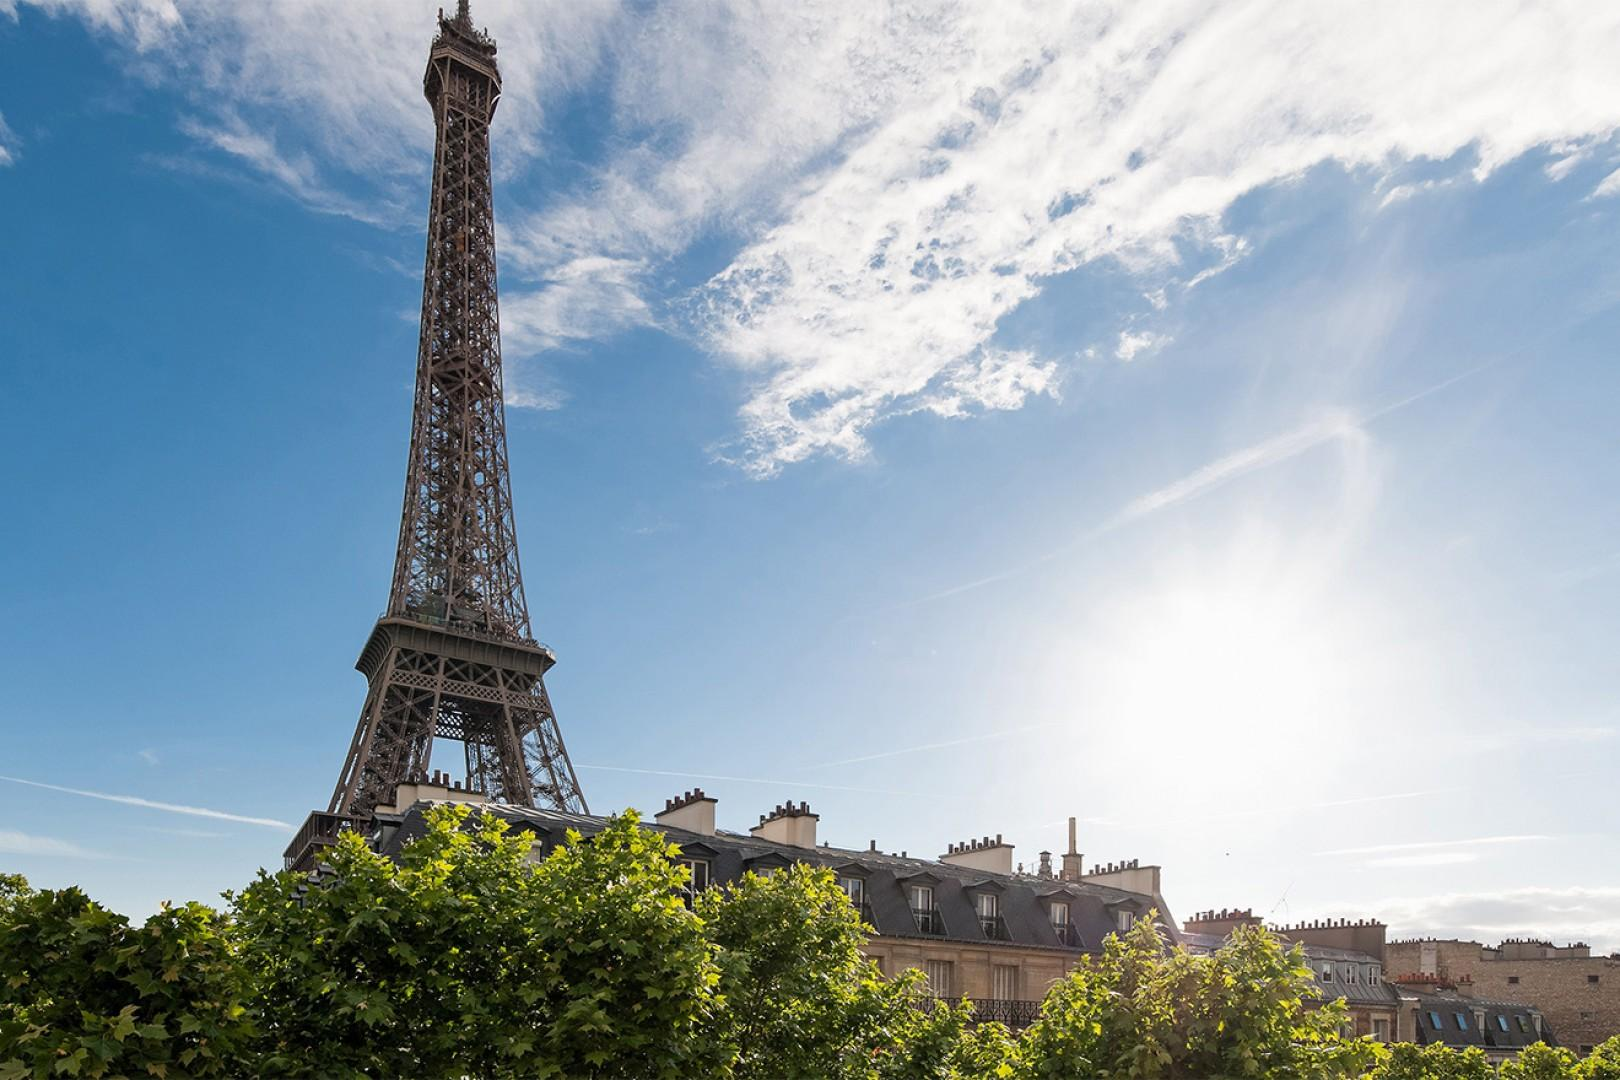 Take a short stroll to the Eiffel Tower for a close-up.